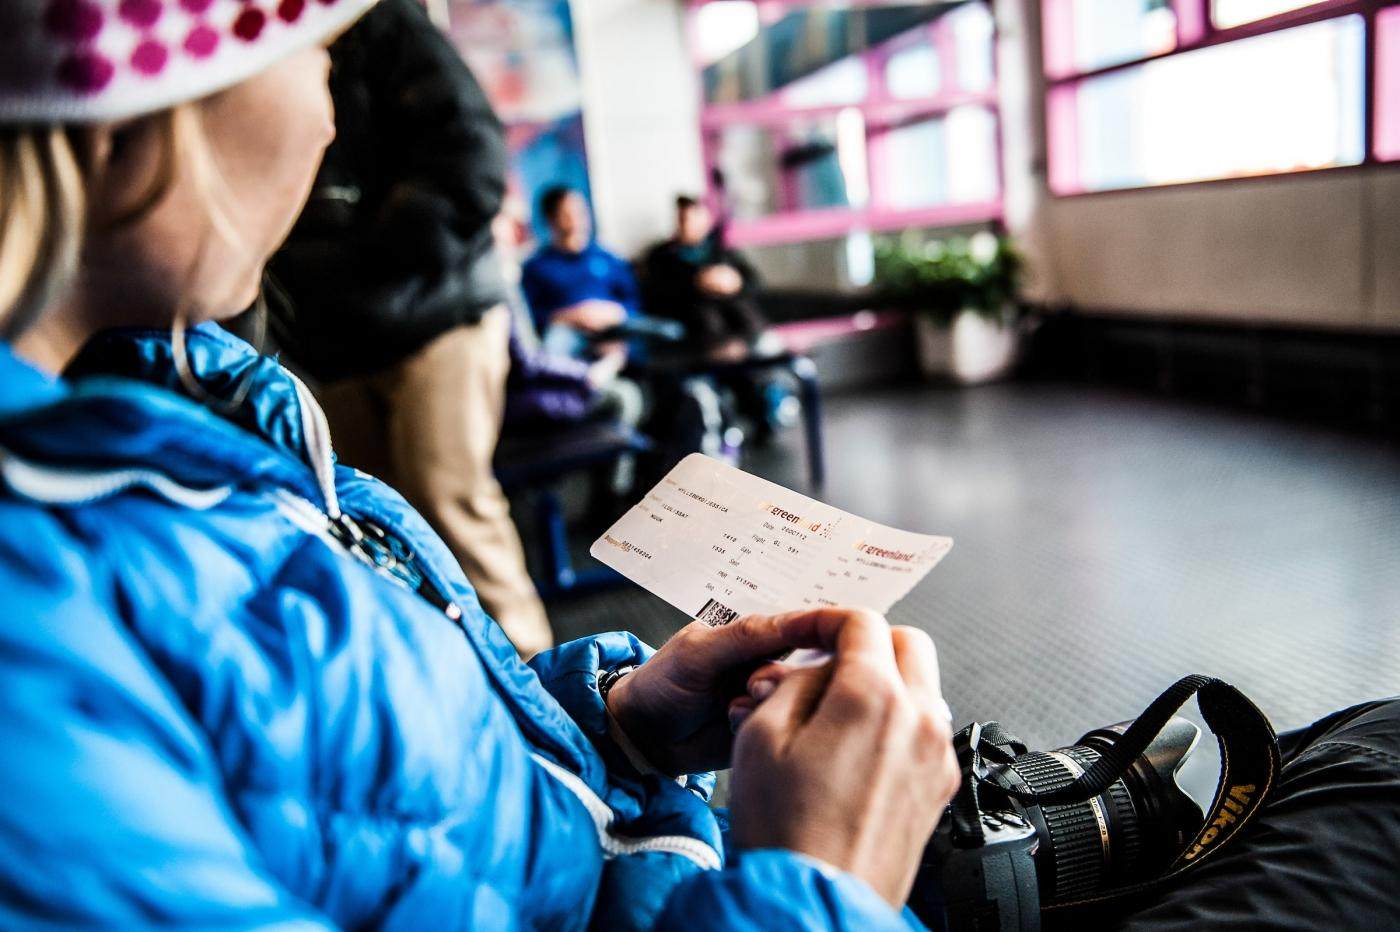 A traveler waiting to board a plane from Ilulissat in Greenland. Photo by Camilla Hylleberg - Visit Greenland